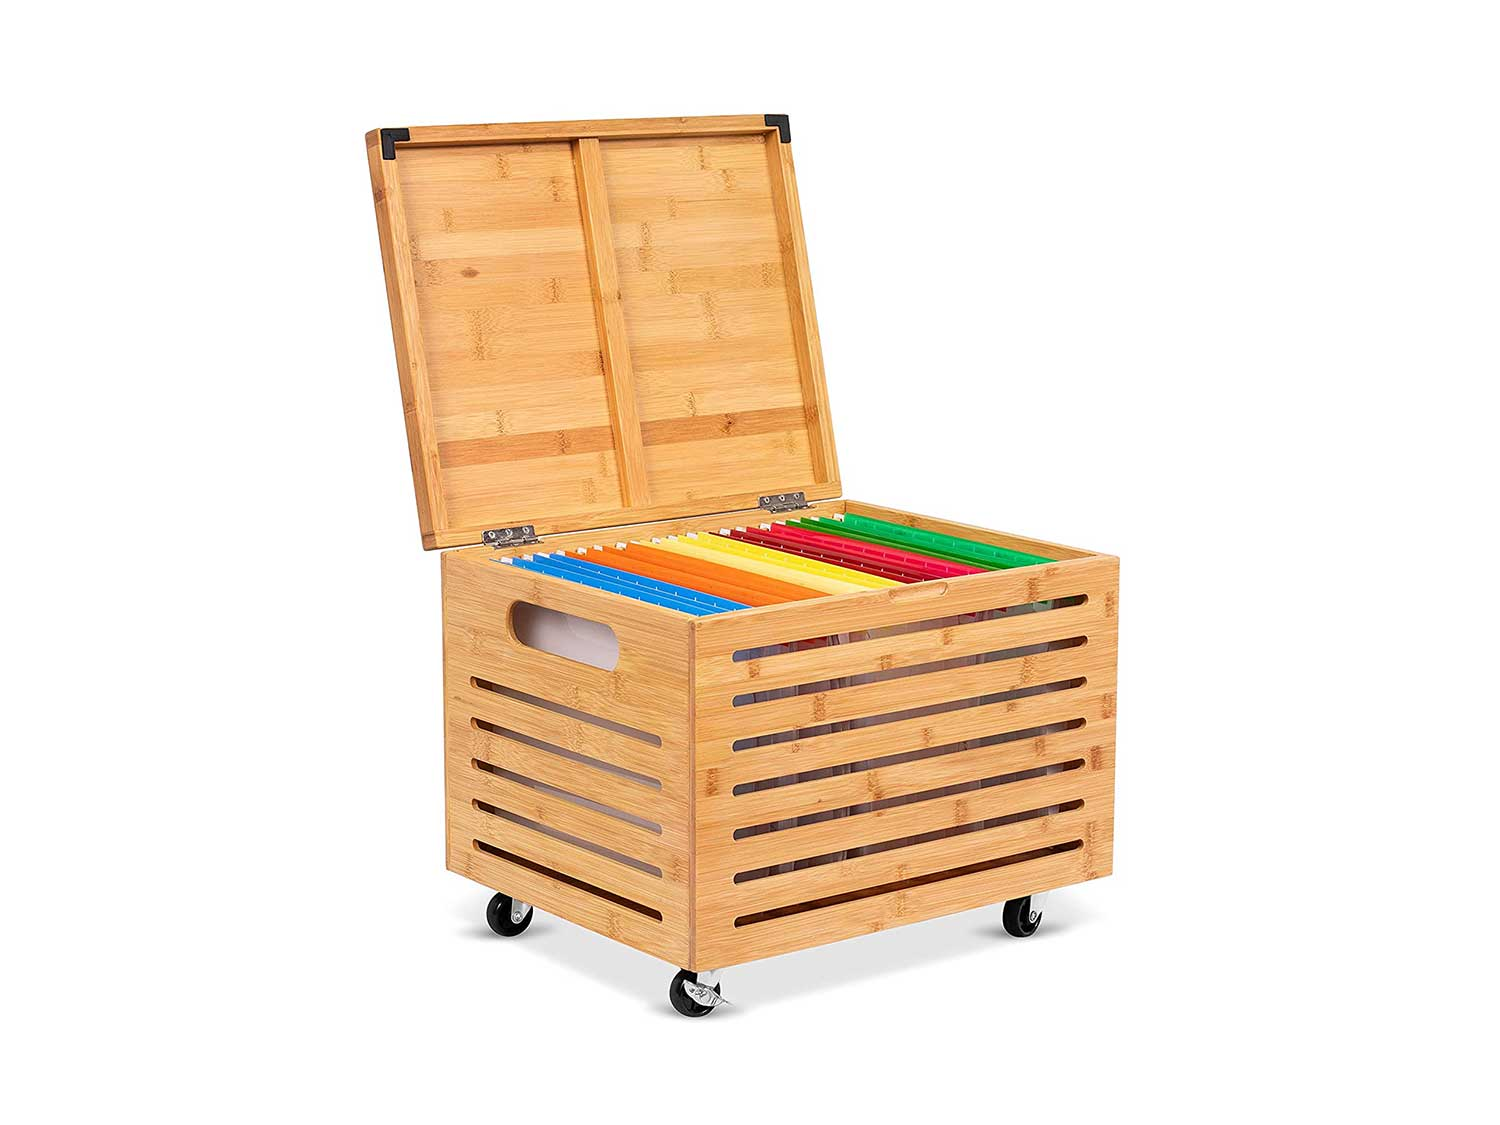 BirdRock Home Rolling File Storage Organizer Box with Lid (NEW VERSION) - Bamboo - Decorative Wood Hanging Filing & Storage Office Box - Letter/Legal - Strong Durable - Toys Blankets Binders - Natural